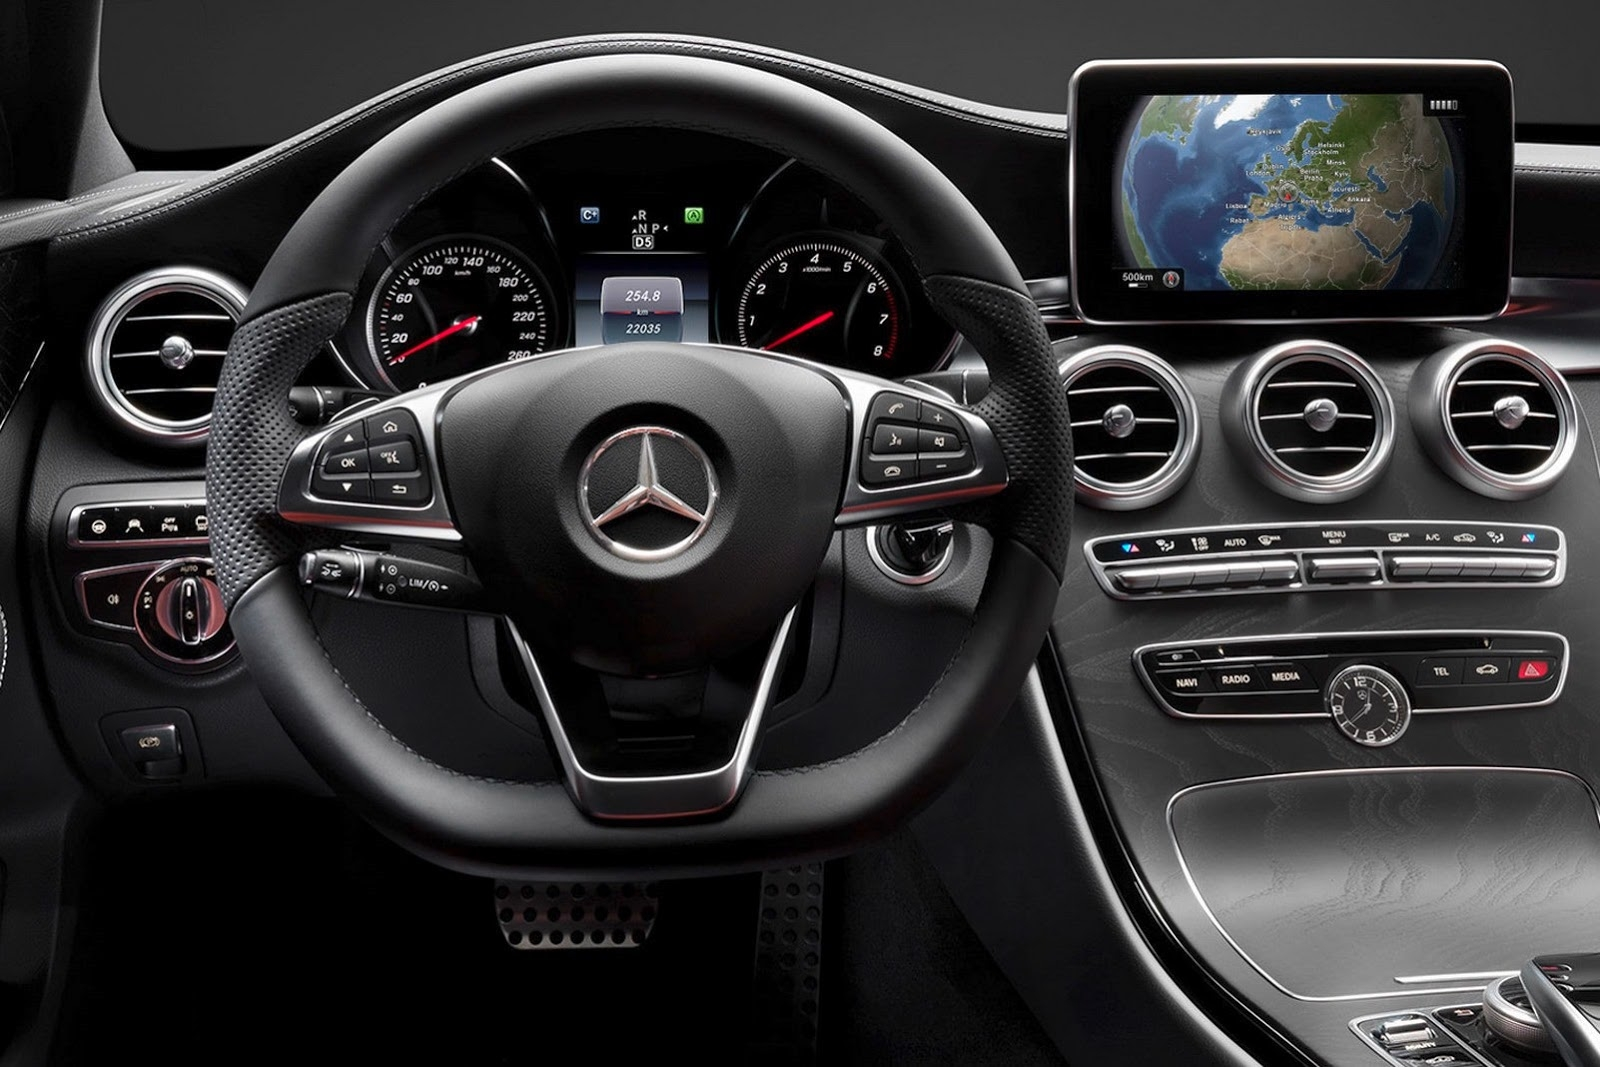 Mercedes Benz C Class 2019 Interior Dashboard